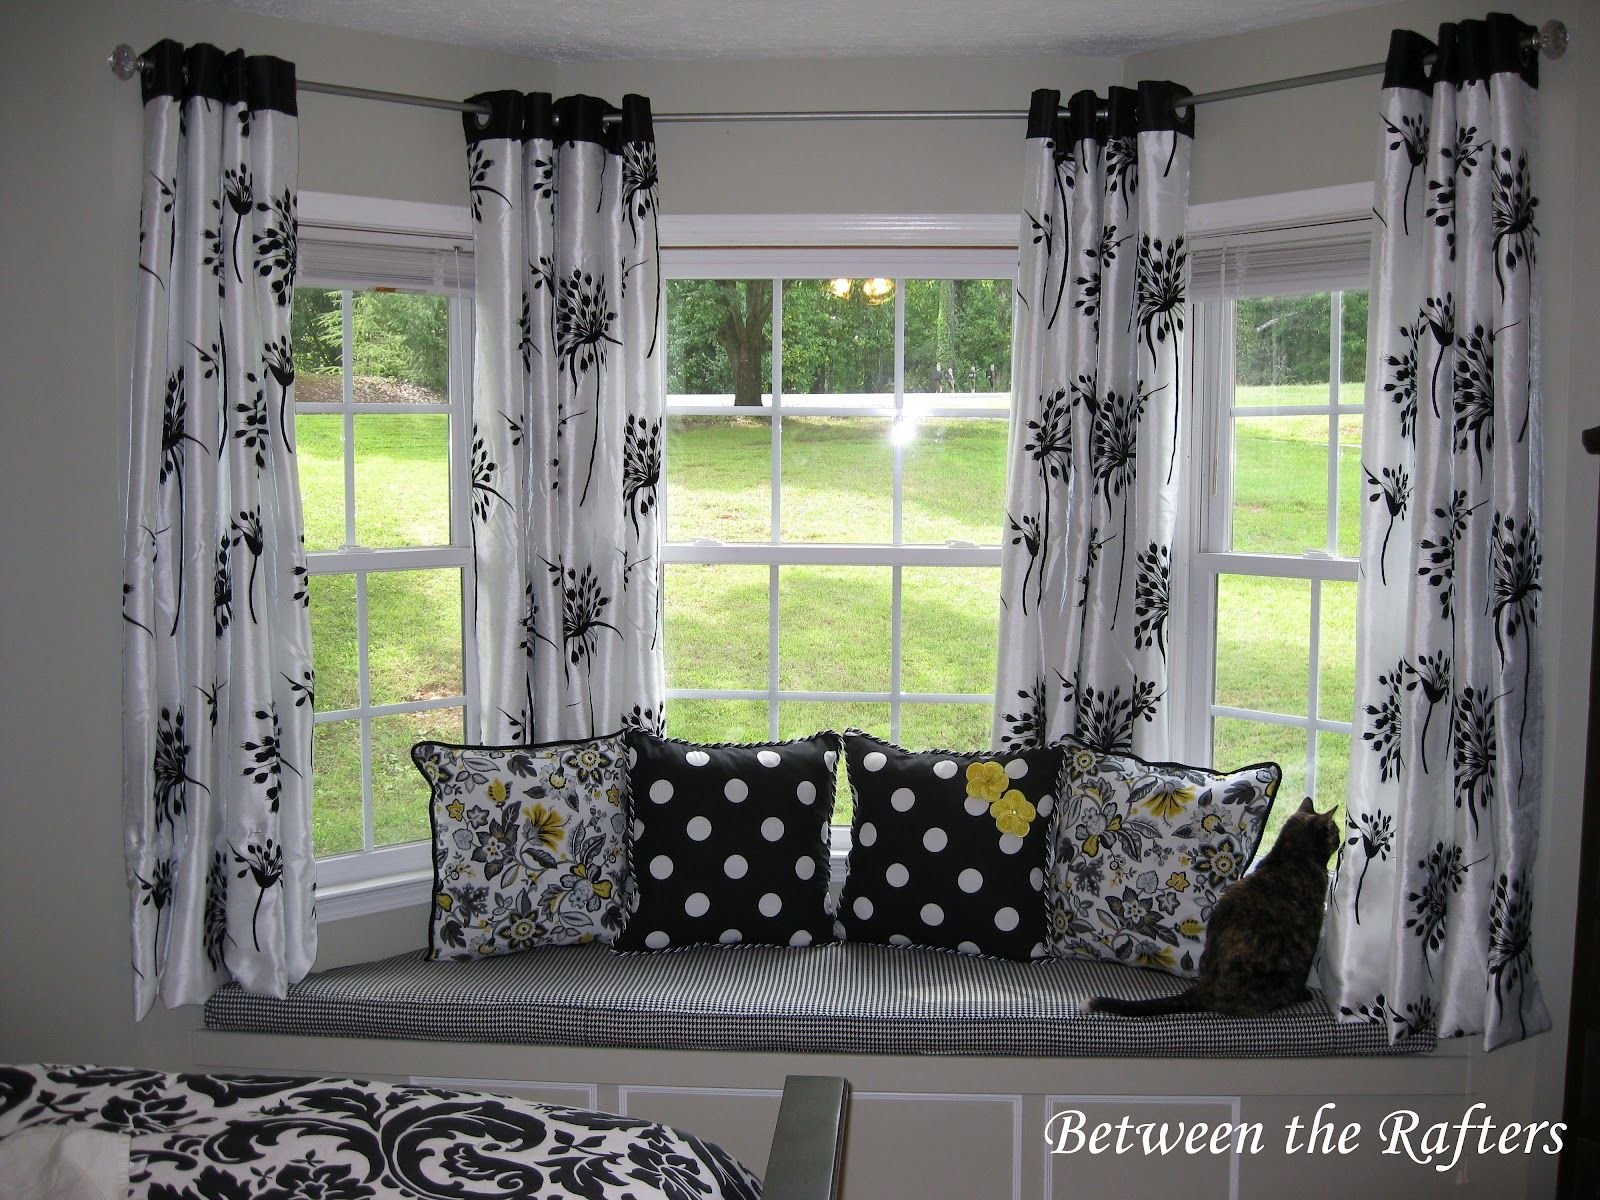 Unique curtain hanging ideas - Between The Rafters Do It Yourself Bay Window Curtain Rod Tutorial